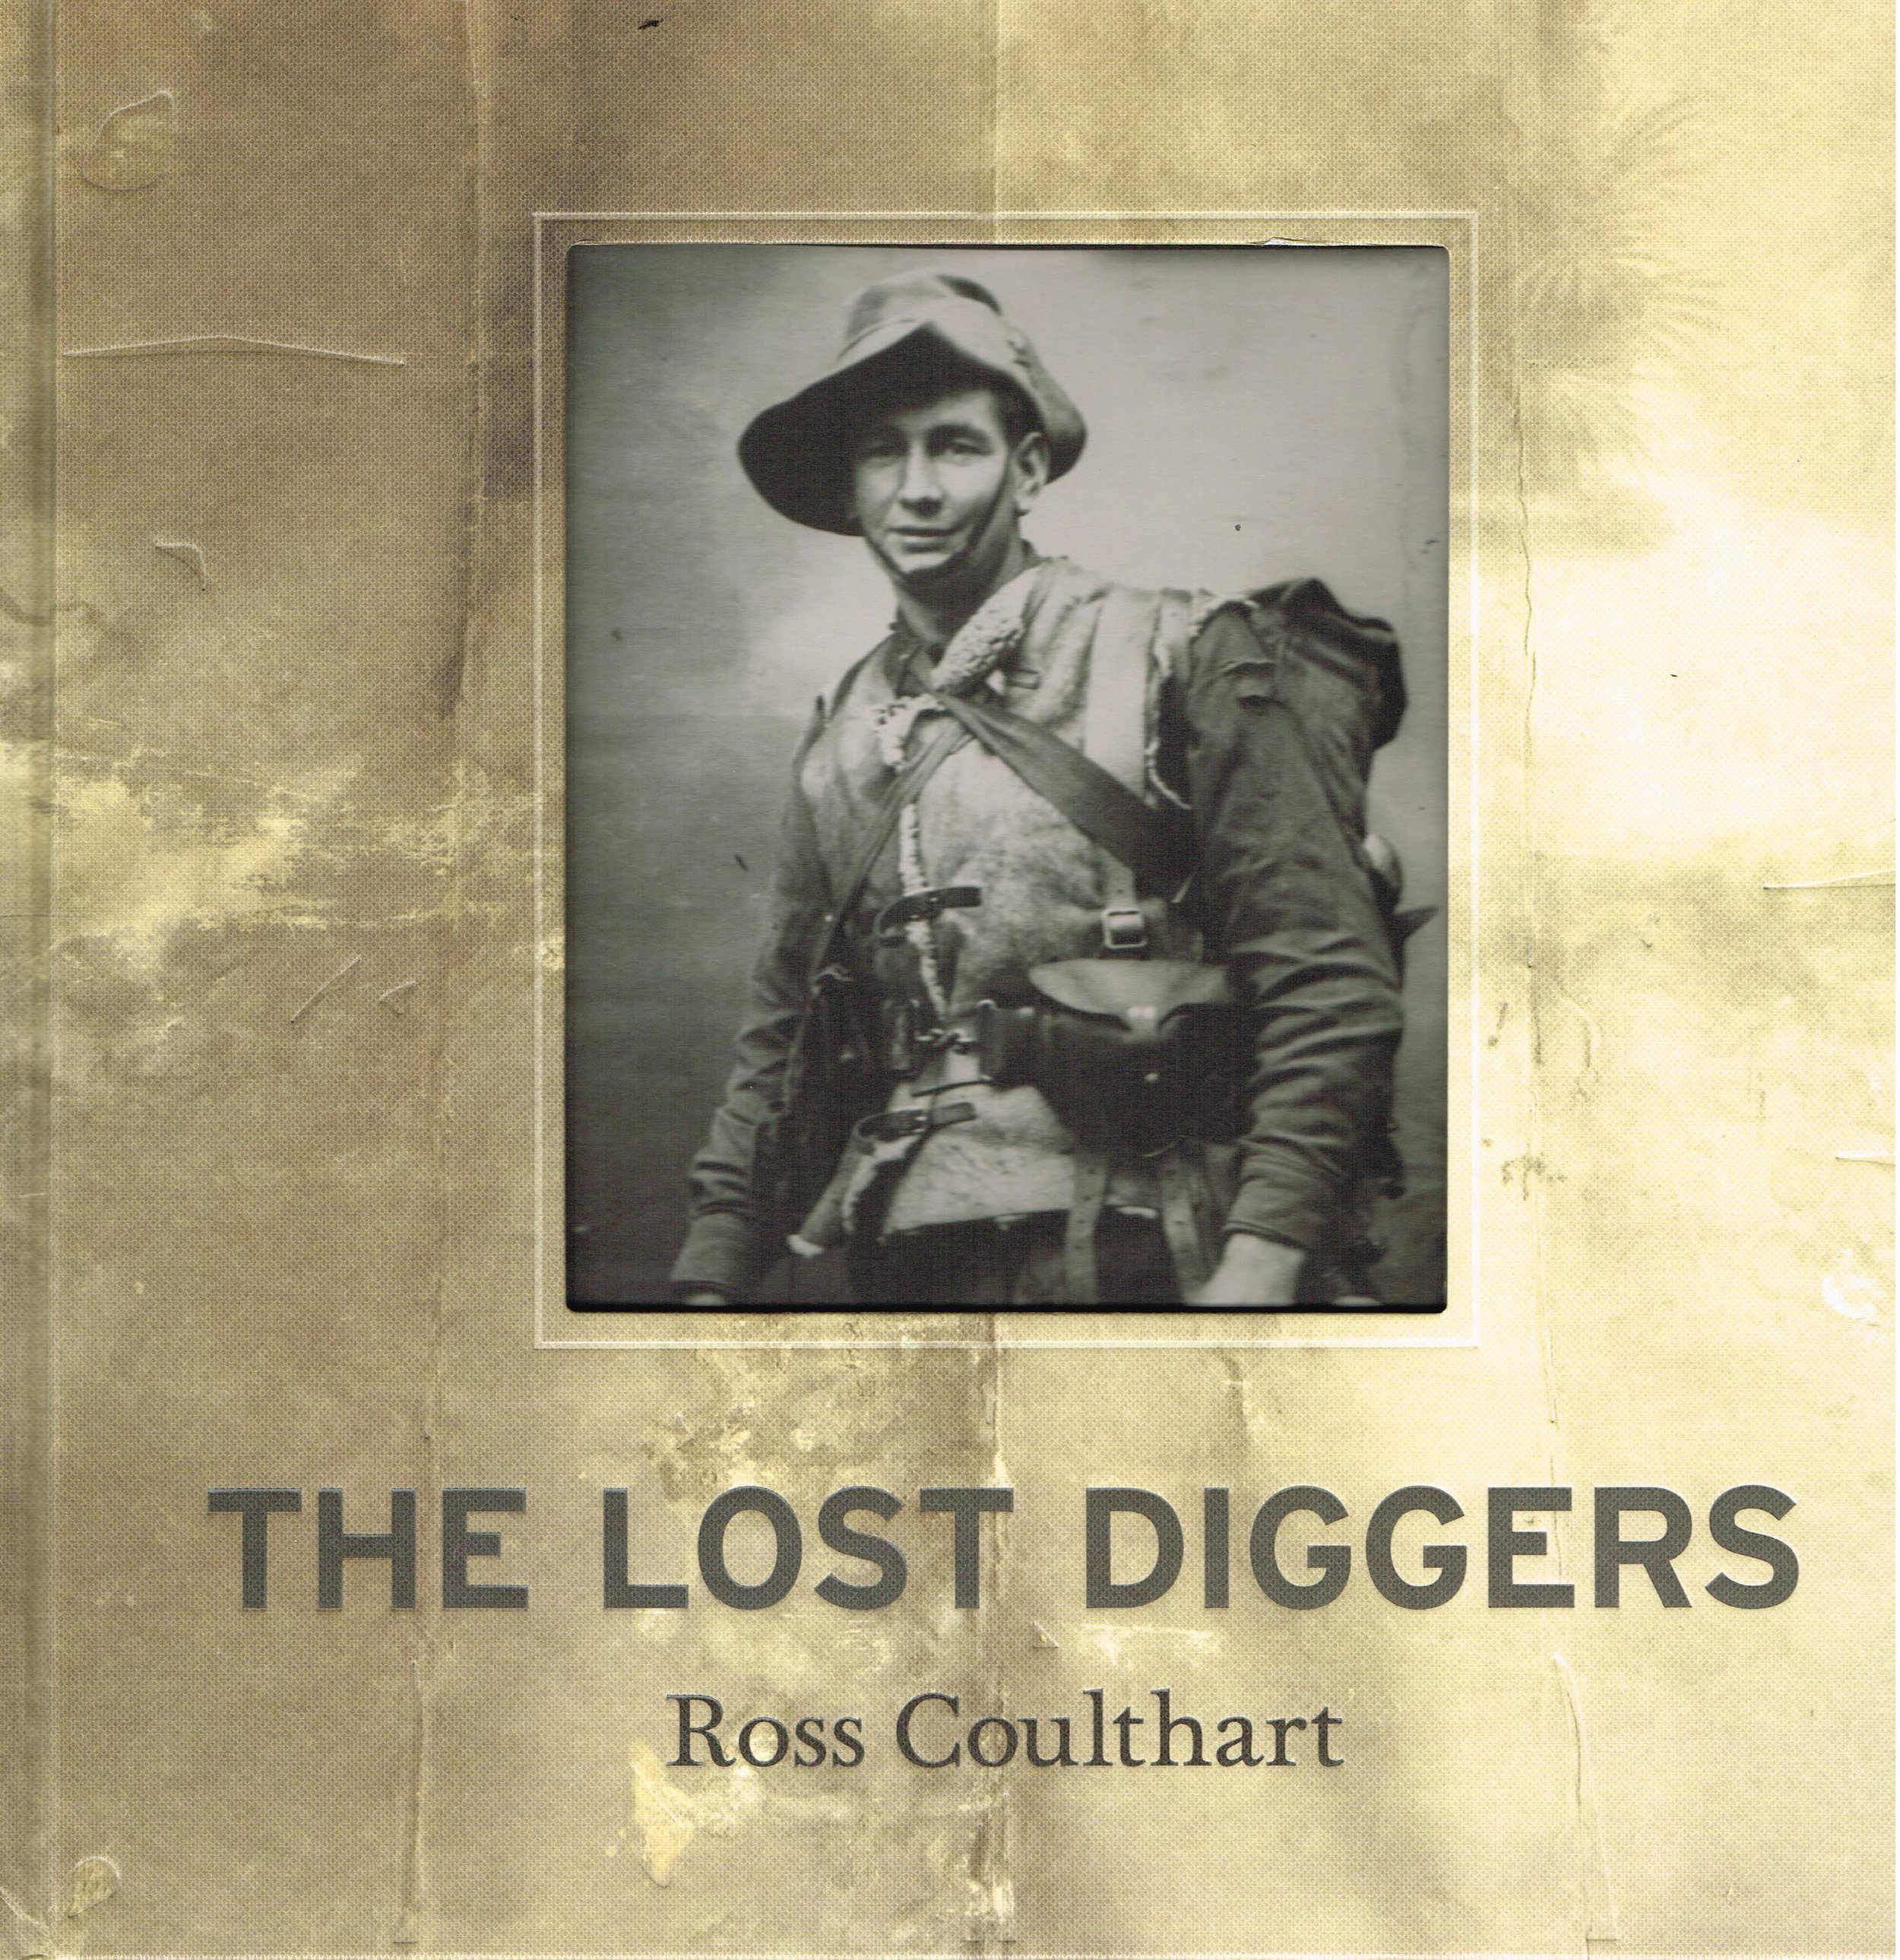 The Lost Diggers  Ross Coulthart